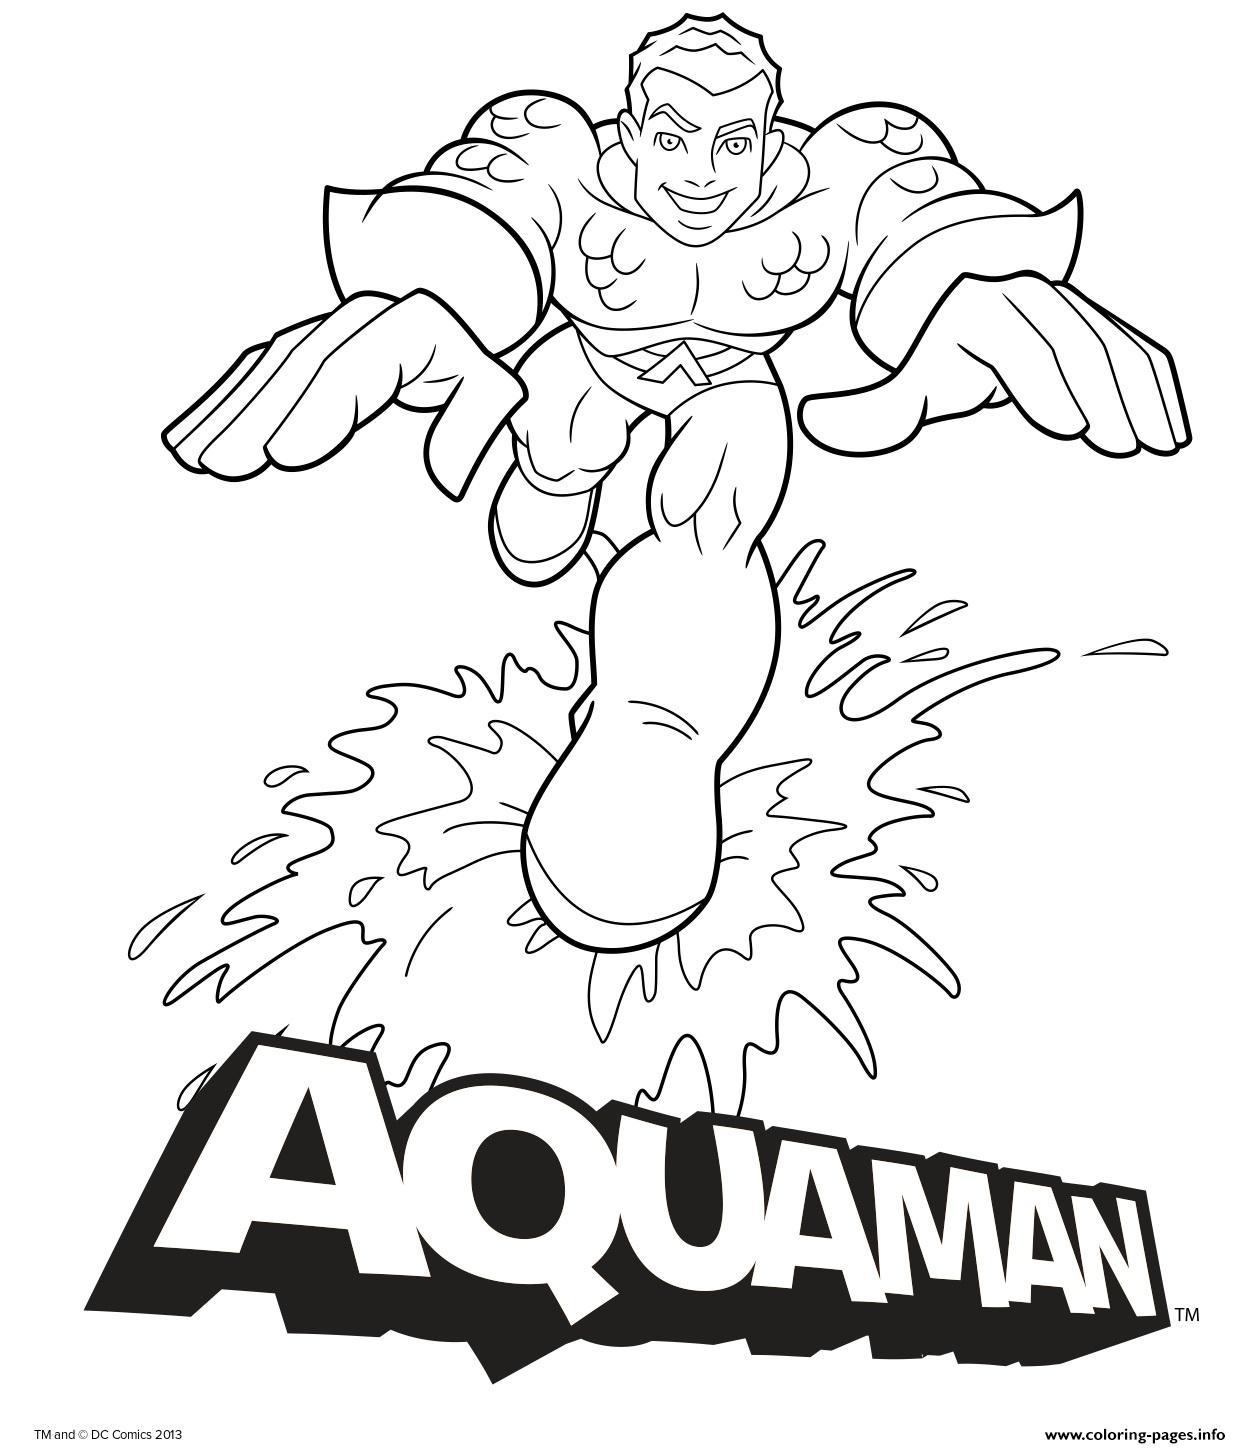 Aquaman free coloring pages and images to print – Colorpages.org | 1448x1241